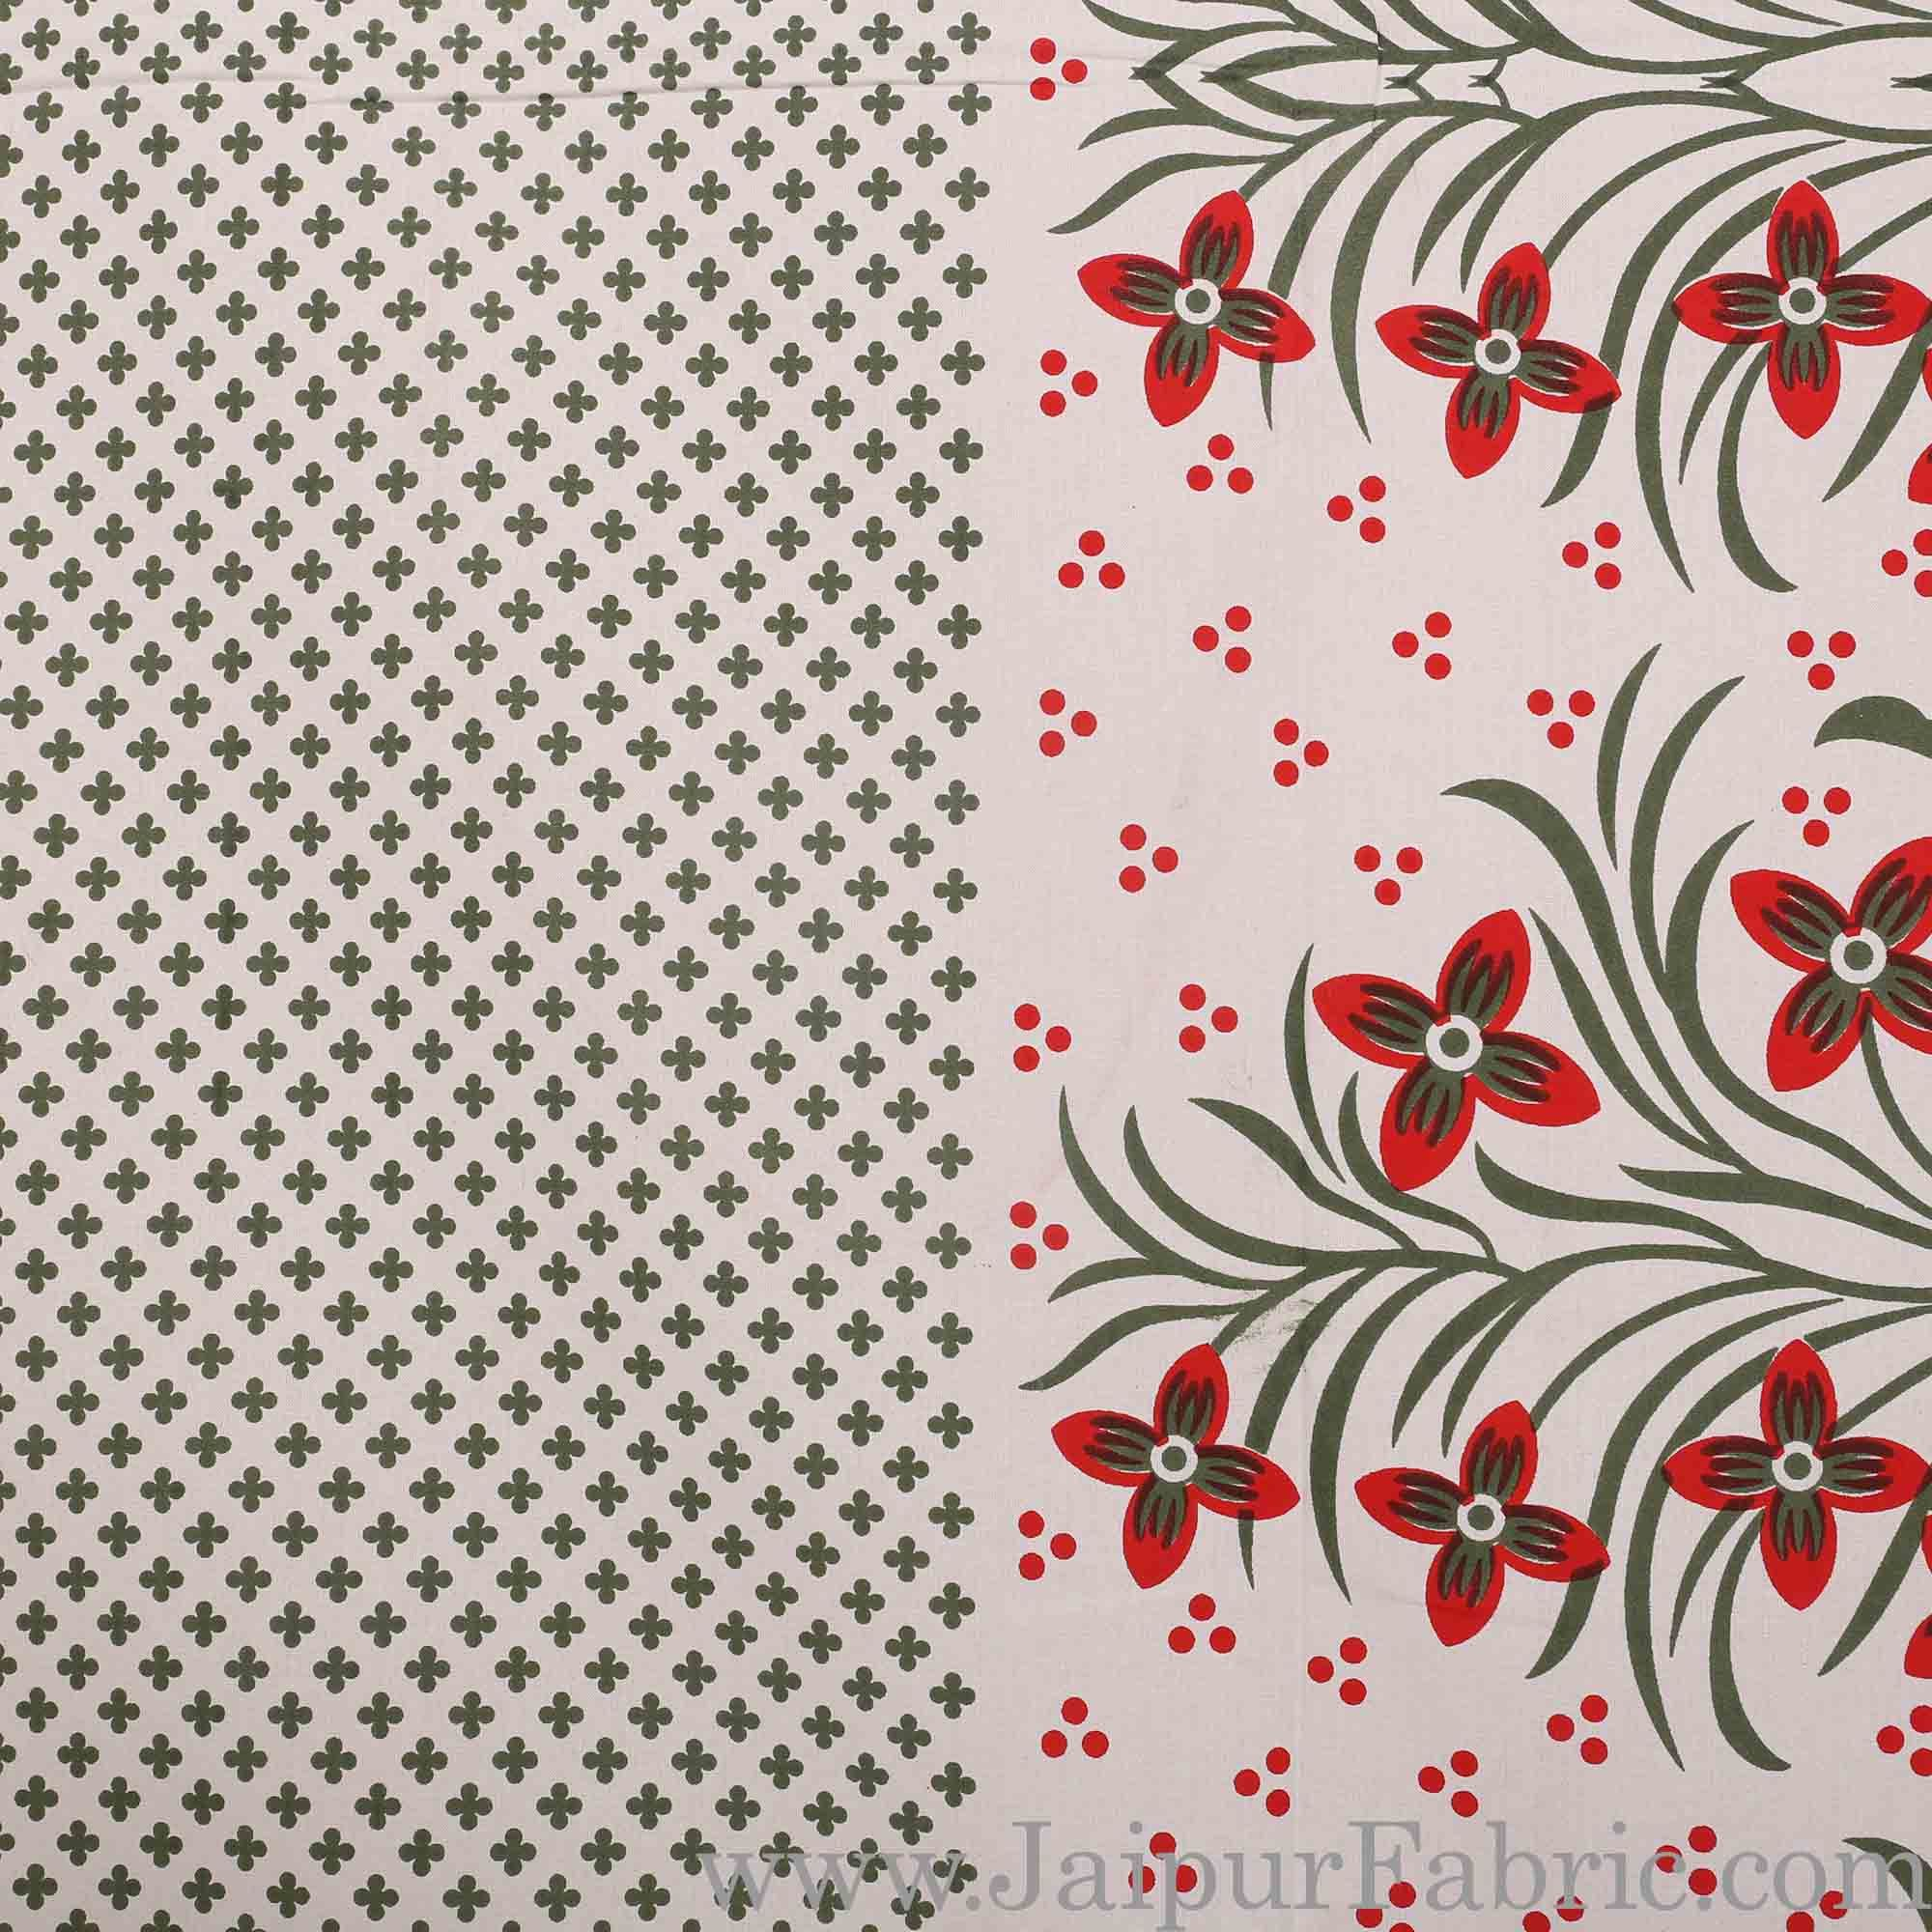 Mehndi Border White Base Red and Green Flower and Leaf Pattern Coton Double Bedsheet